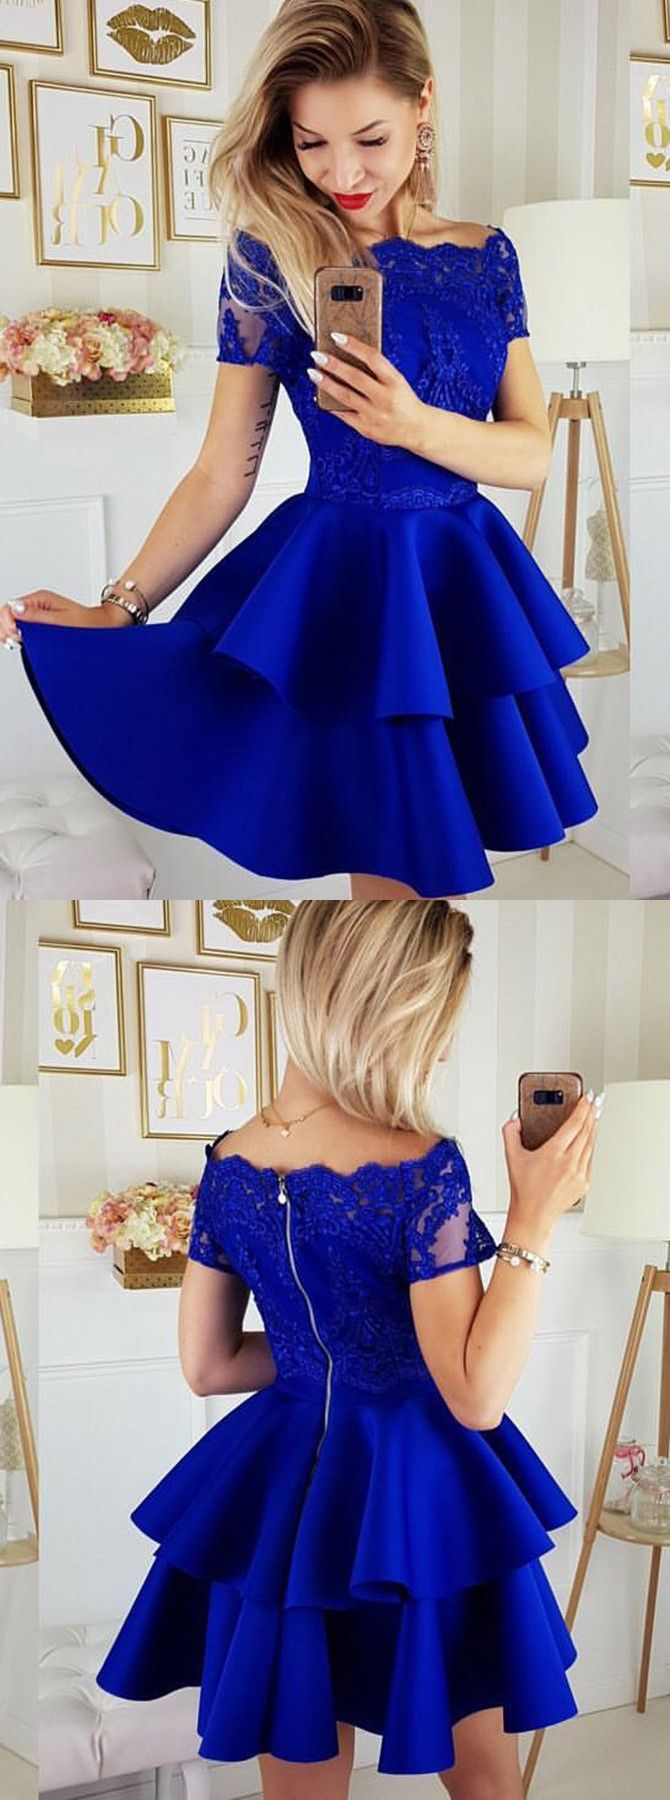 Aline off the shoulder royal blue short homecoming dress with lace